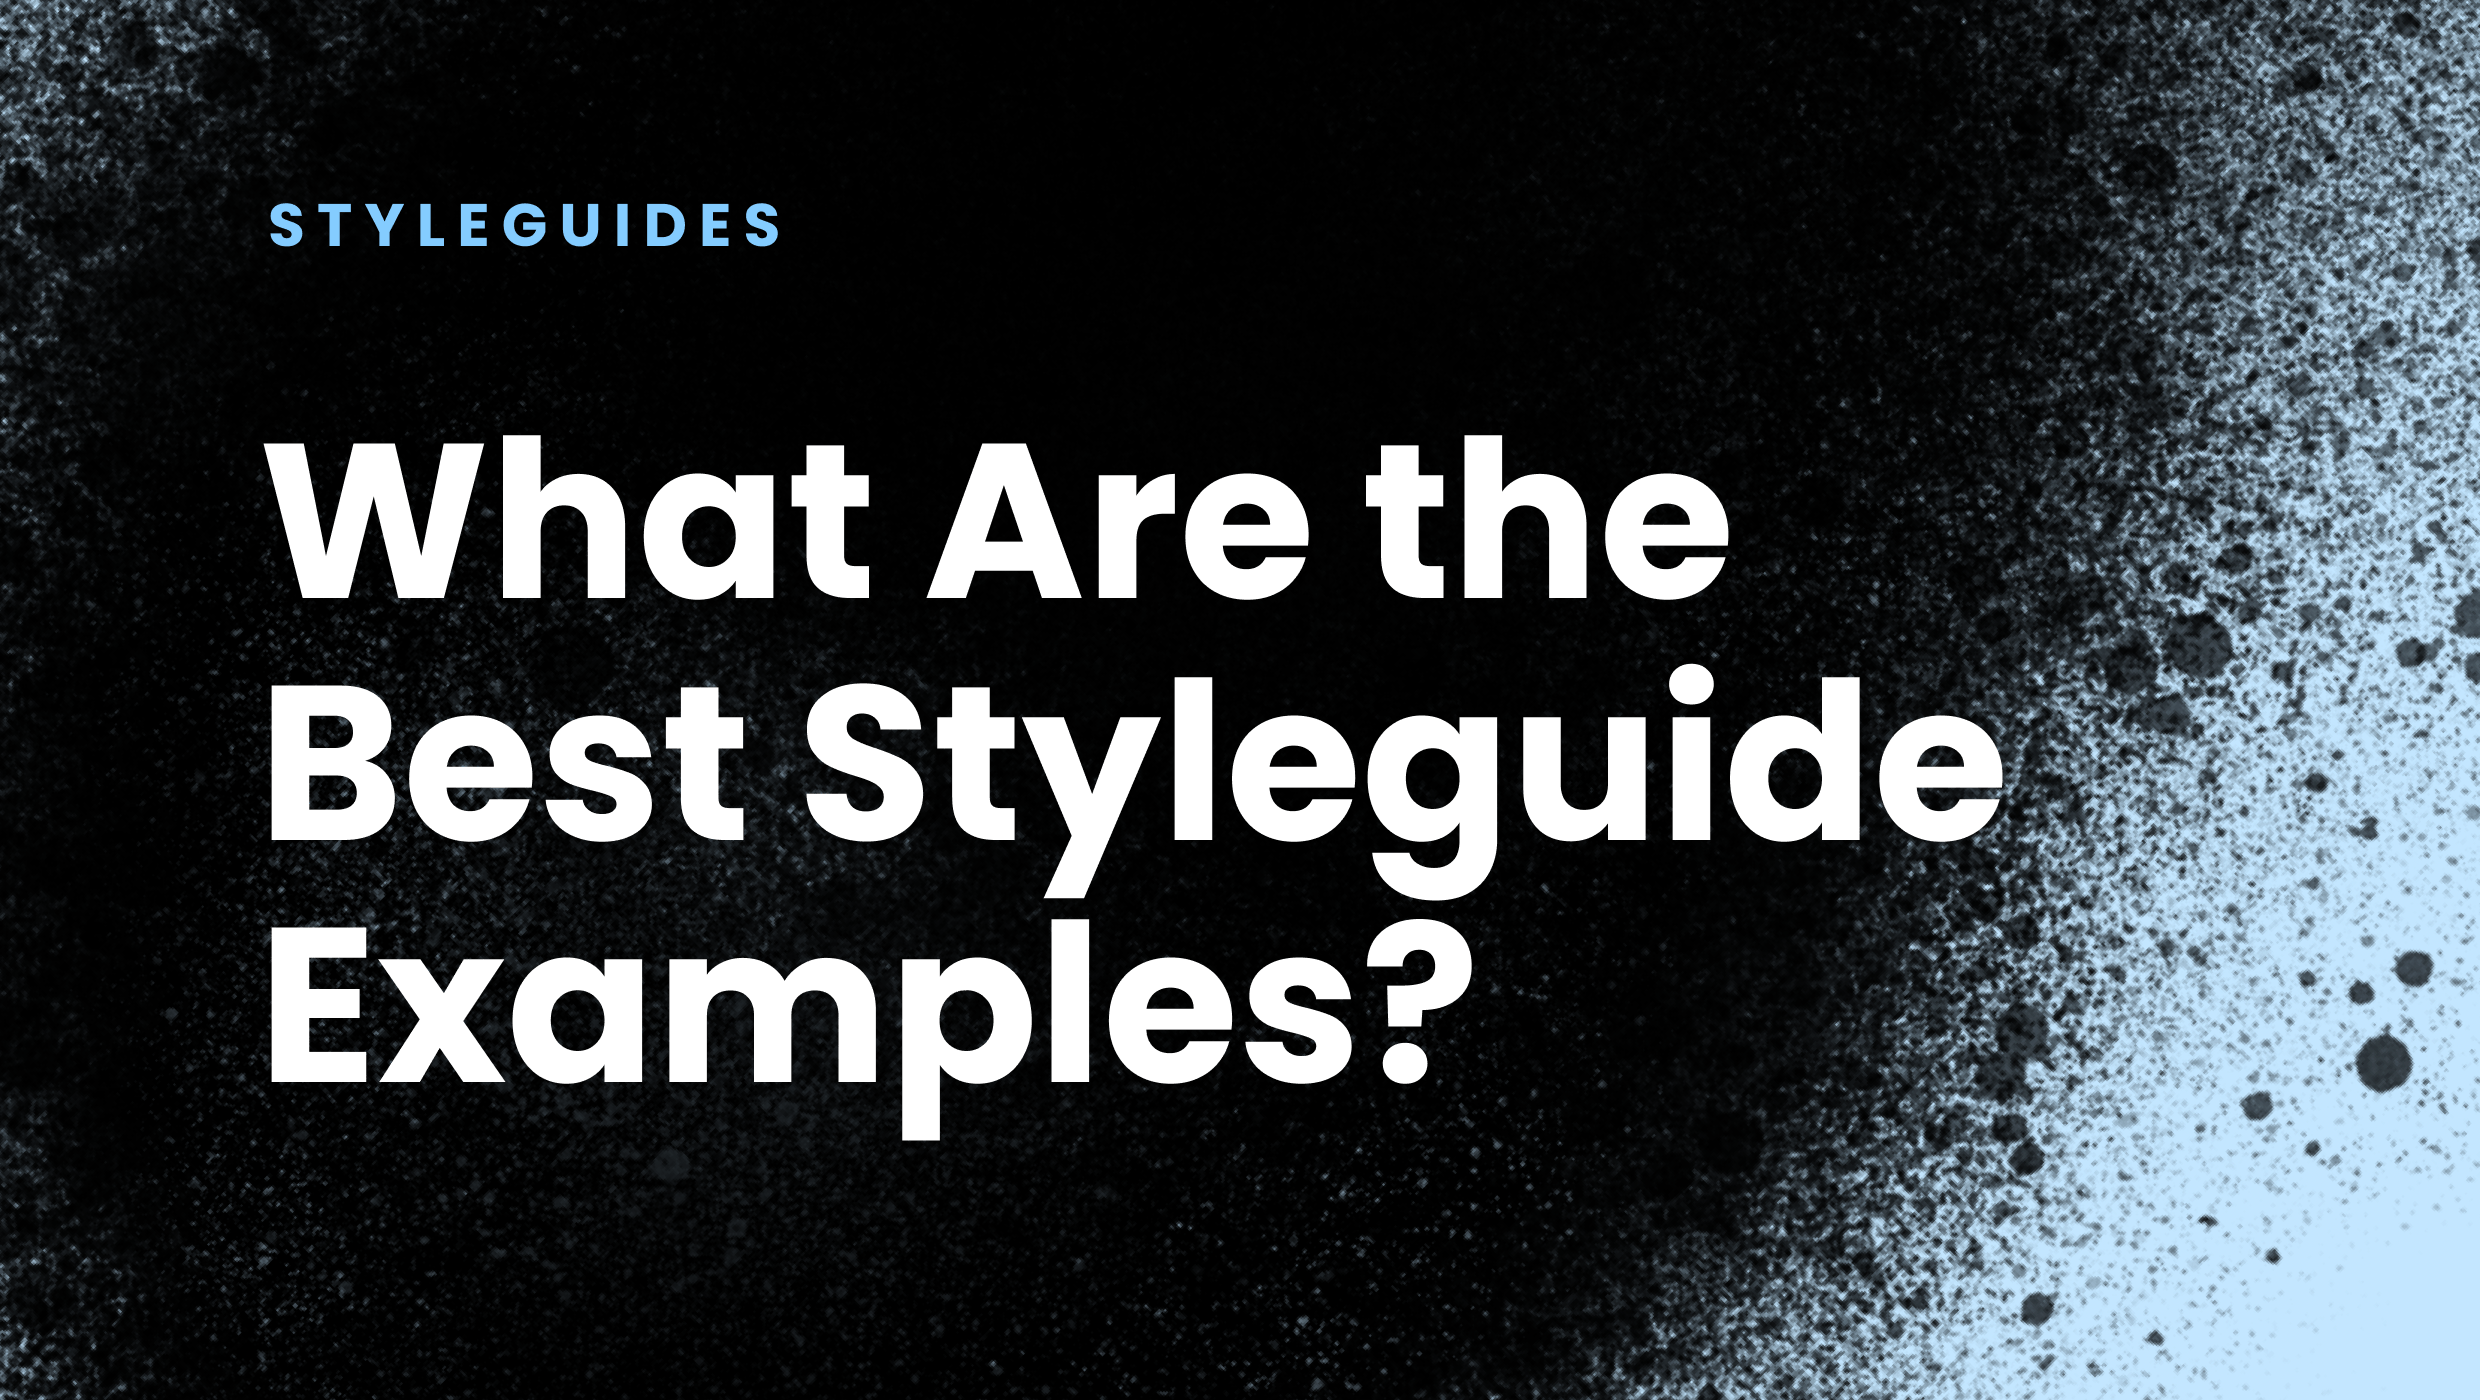 What Are the Best Styleguide Examples?